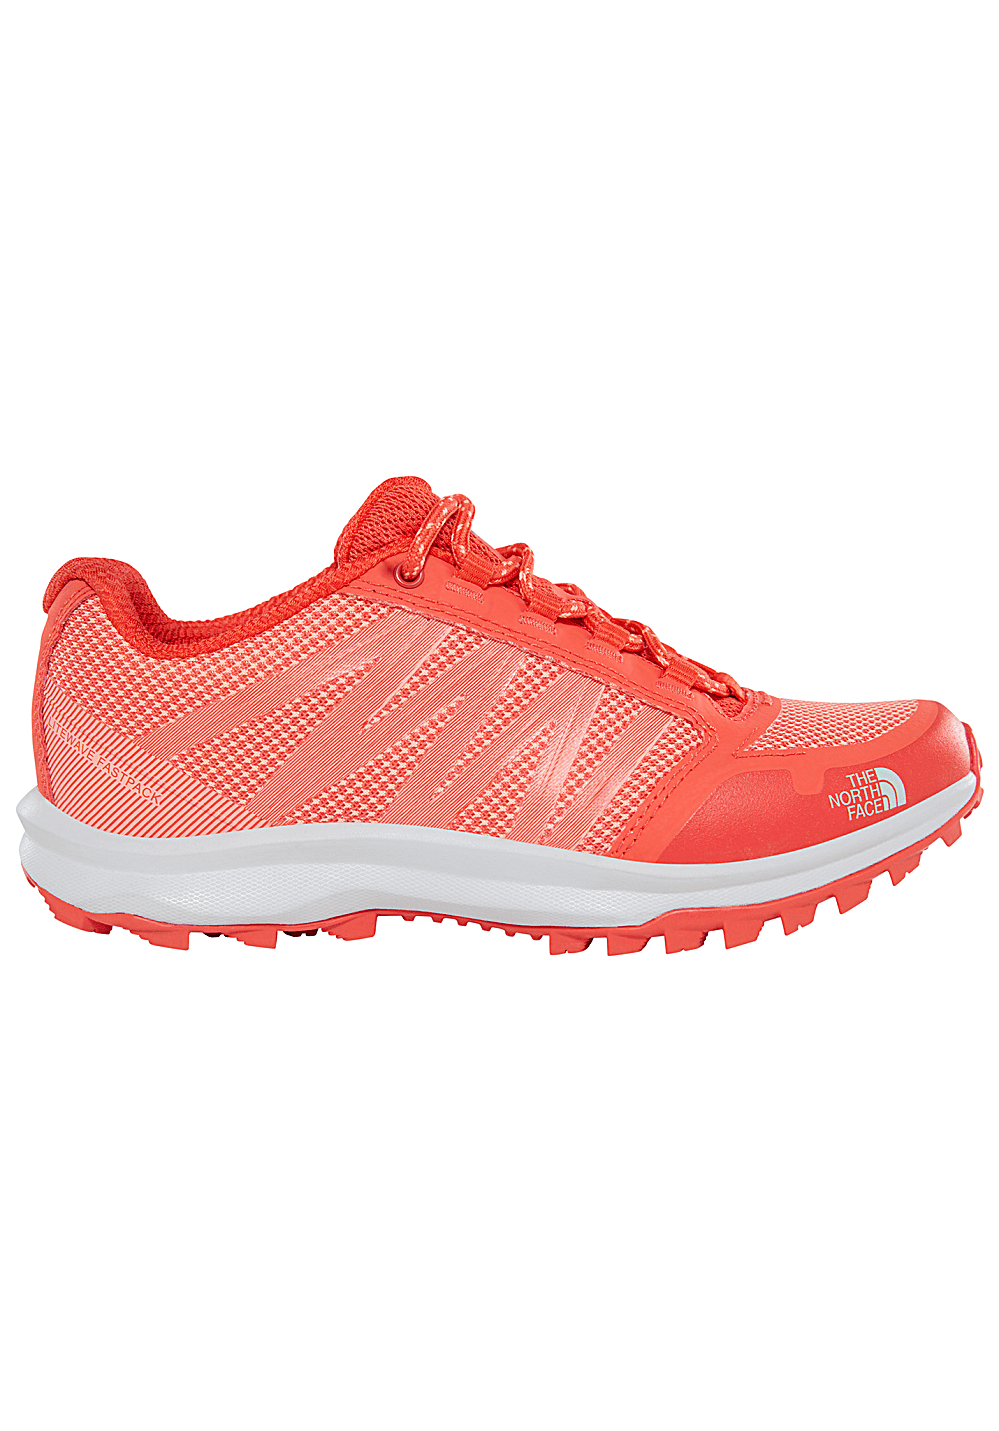 The North Face Litewave Fastpack Trekkingschuhe für Damen Orange